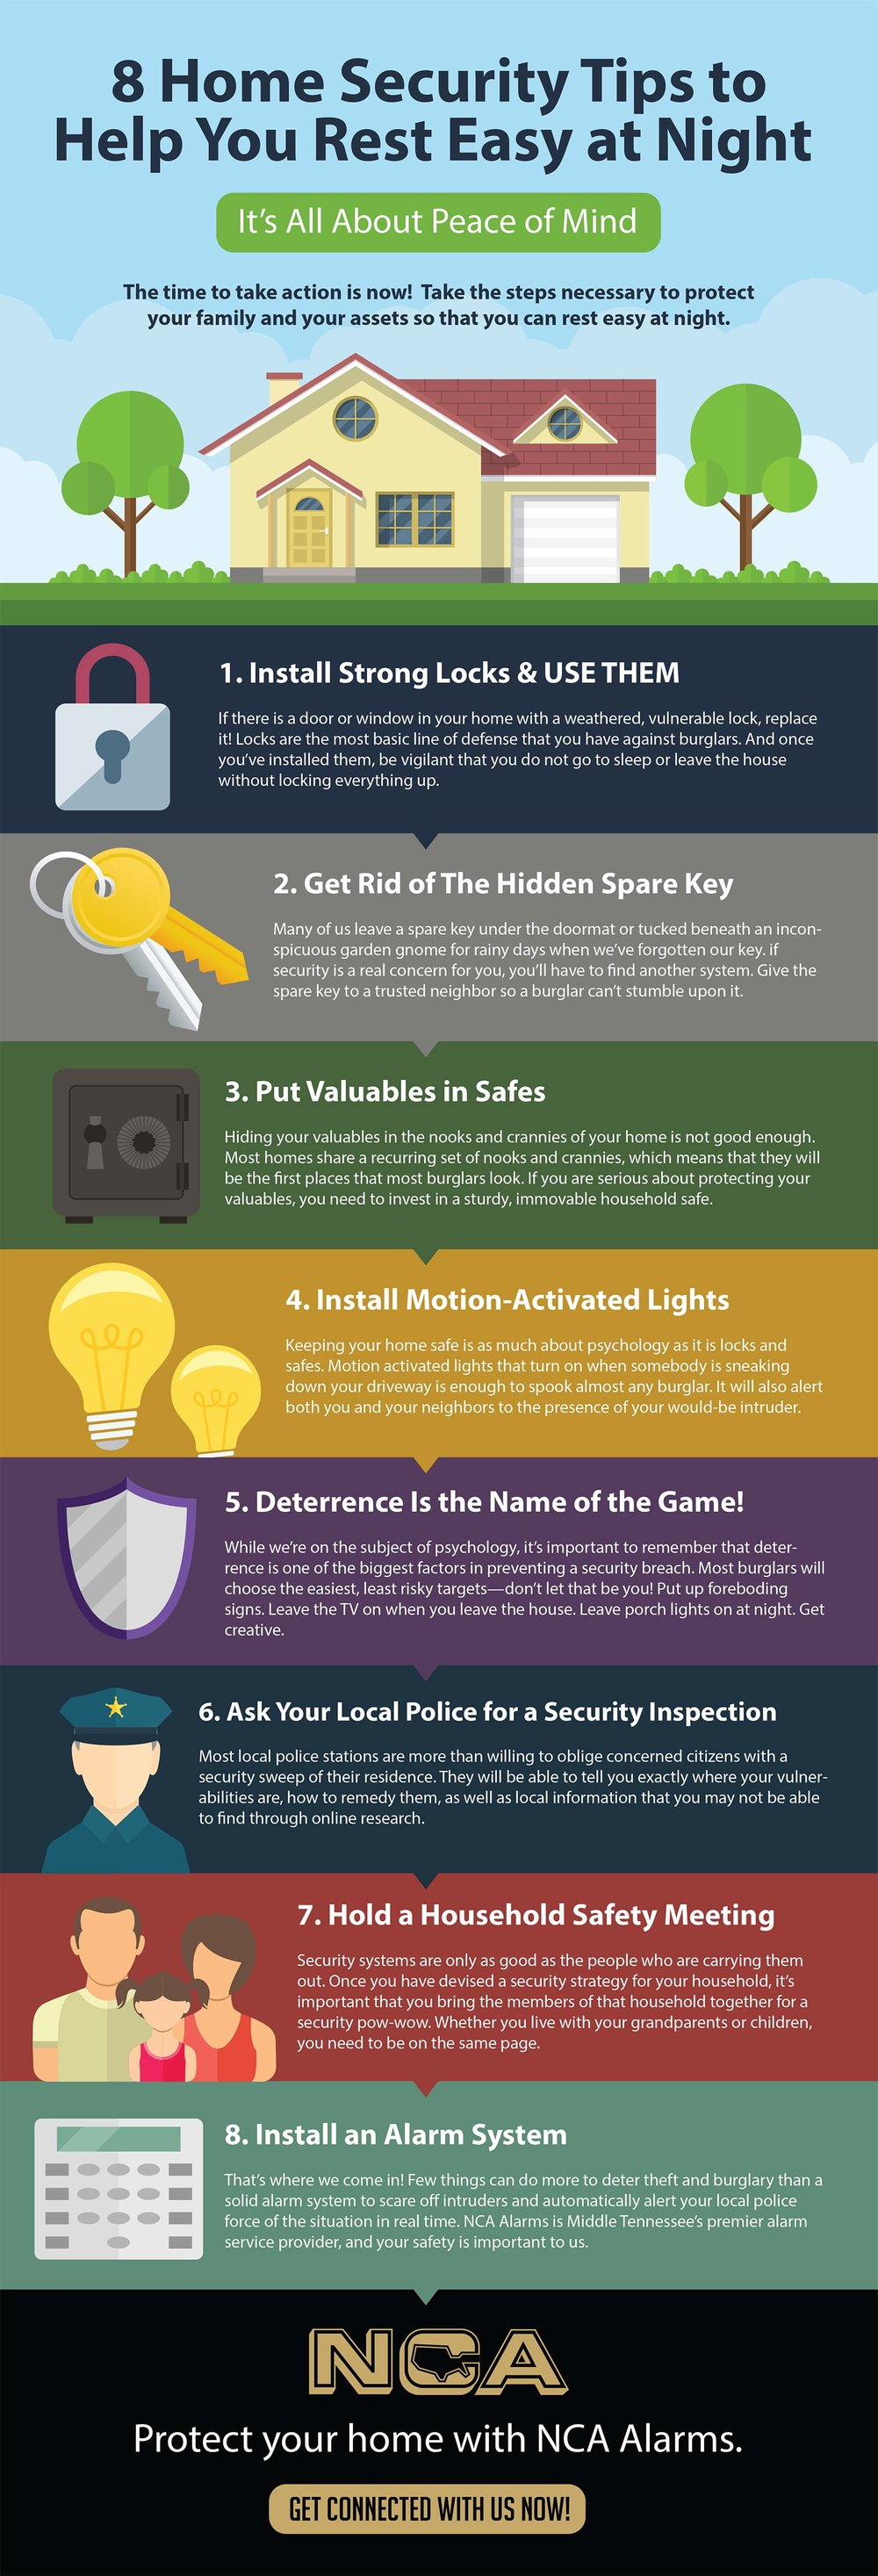 8 Home Security Tips Infographic | NCA Alarms Nashville Home Security Tips on home beauty tips, home security companies, mortgage tips, security systems, security cameras, alarm systems, home hacks, home security equipment, home alarm systems, security alarms, home access control, home software, home hiding places for valuables, home safety tips, home electrical wiring tips, home alarms, burglar alarms, wireless home security, business tips, home security alarm systems, surveillance cameras, wireless home security system, diy tips, home selling tips, dance tips, home security company, home security cameras, interior decorating tips, home security alarm, home products, golf tips, insurance tips, diy home security,